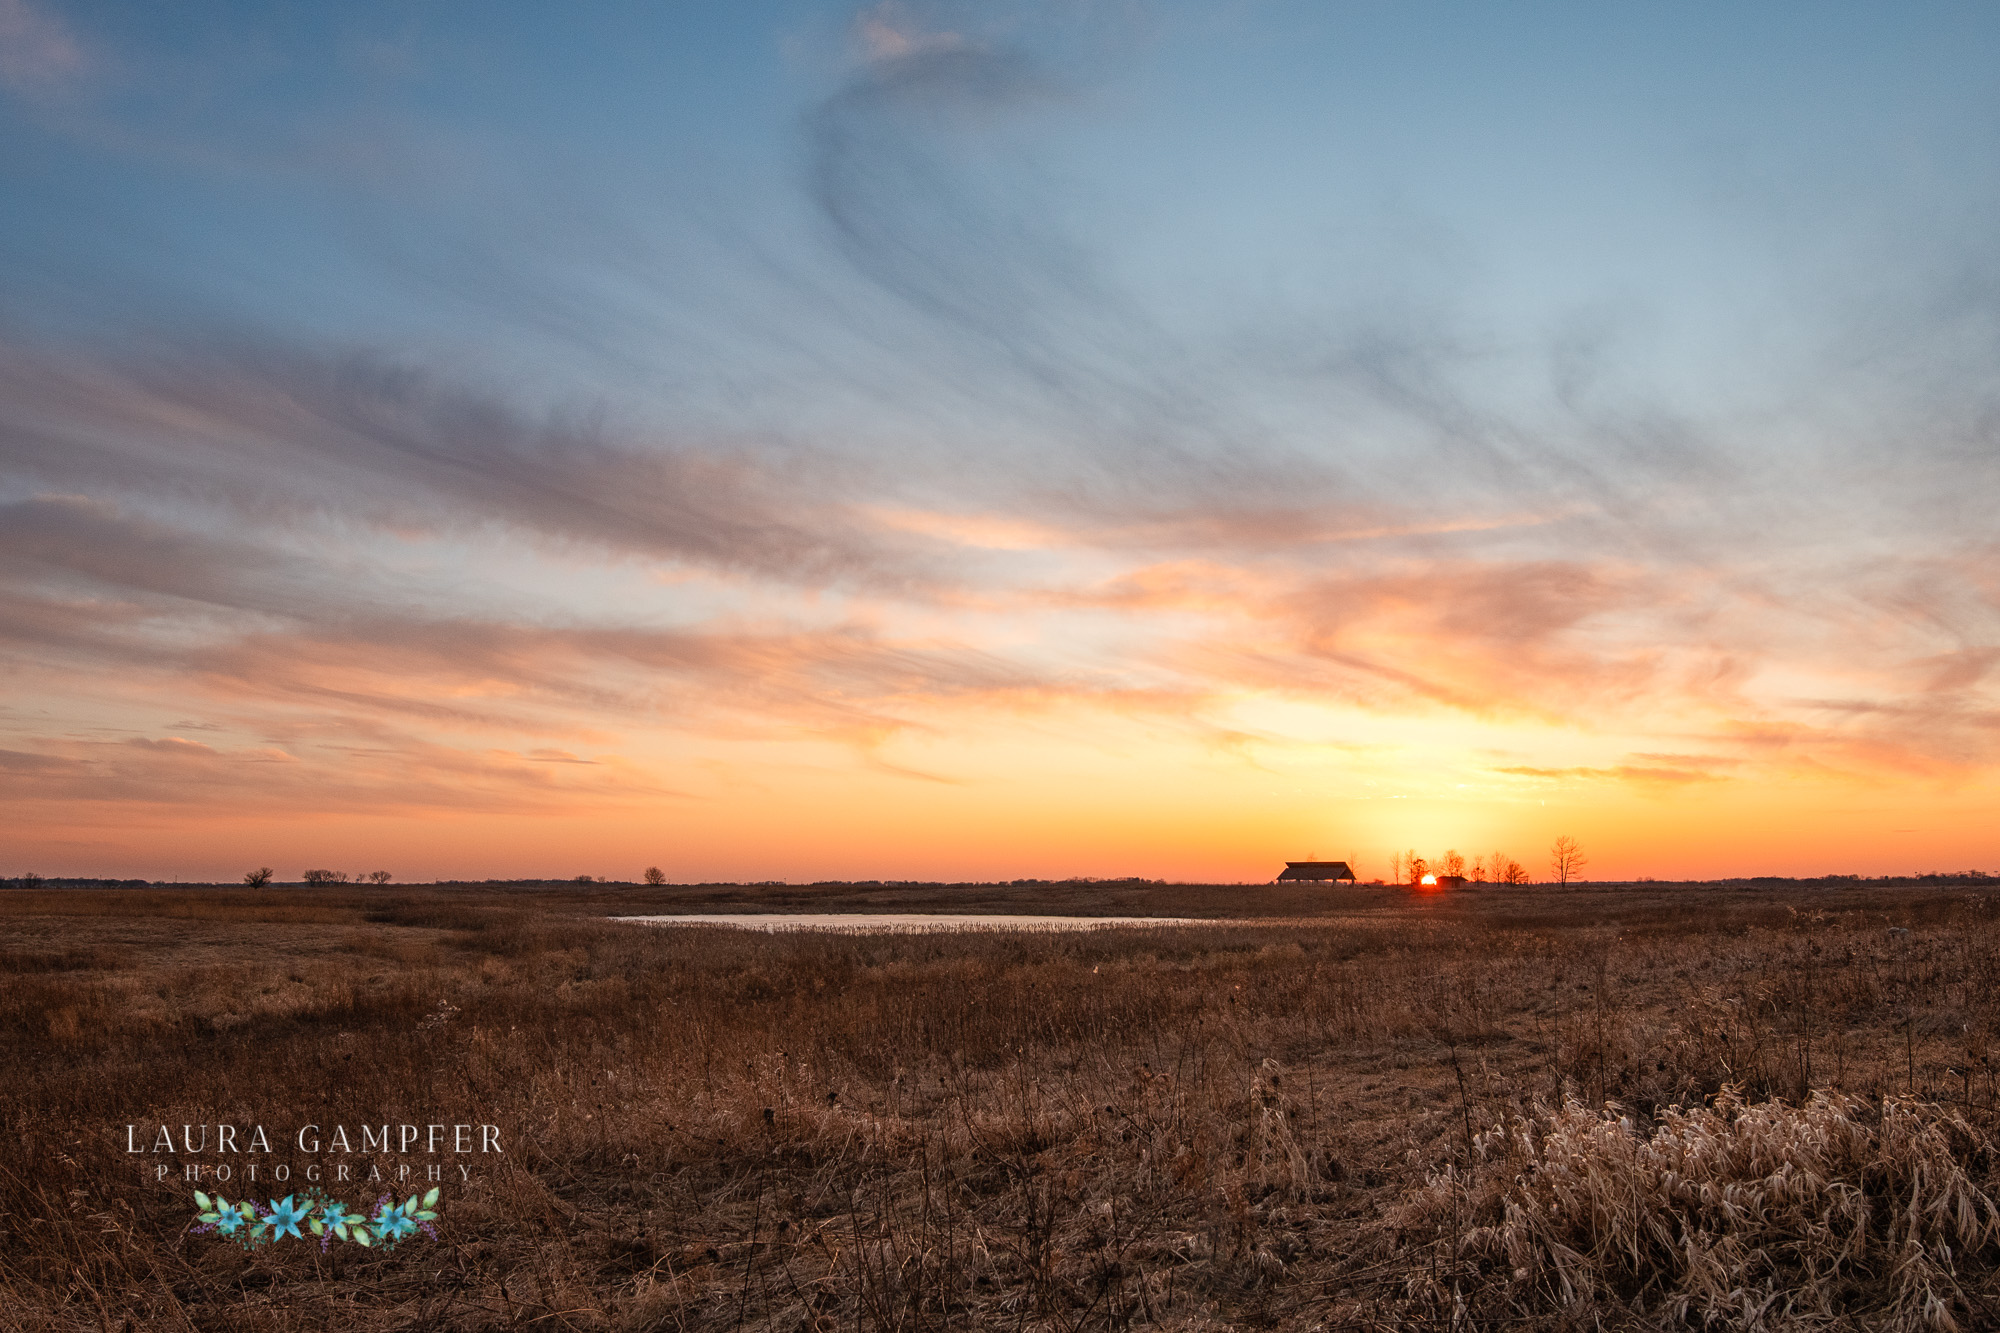 illinois-prairie-photos-laura-gampfer-photography